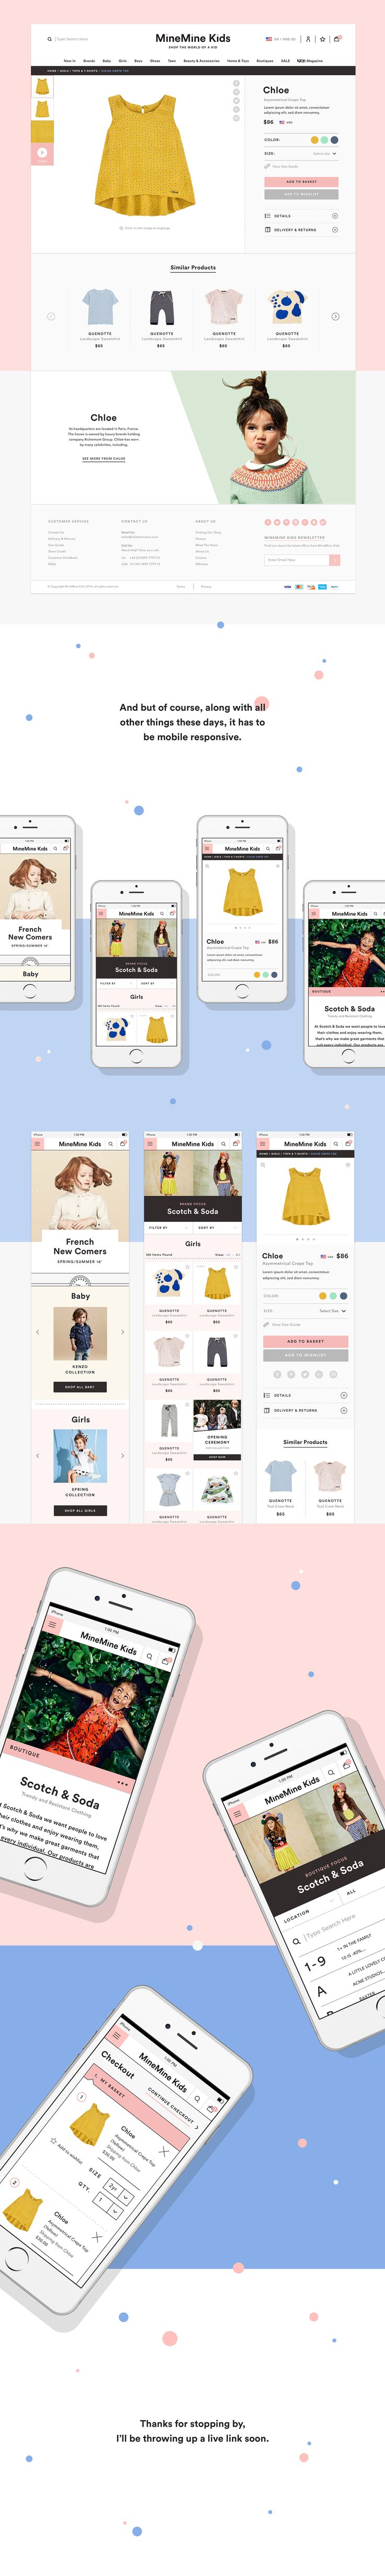 How to design a website for kids - Minemine Kids Is An Online Department Store For Kids Where You Can Shop Anything From Clothing